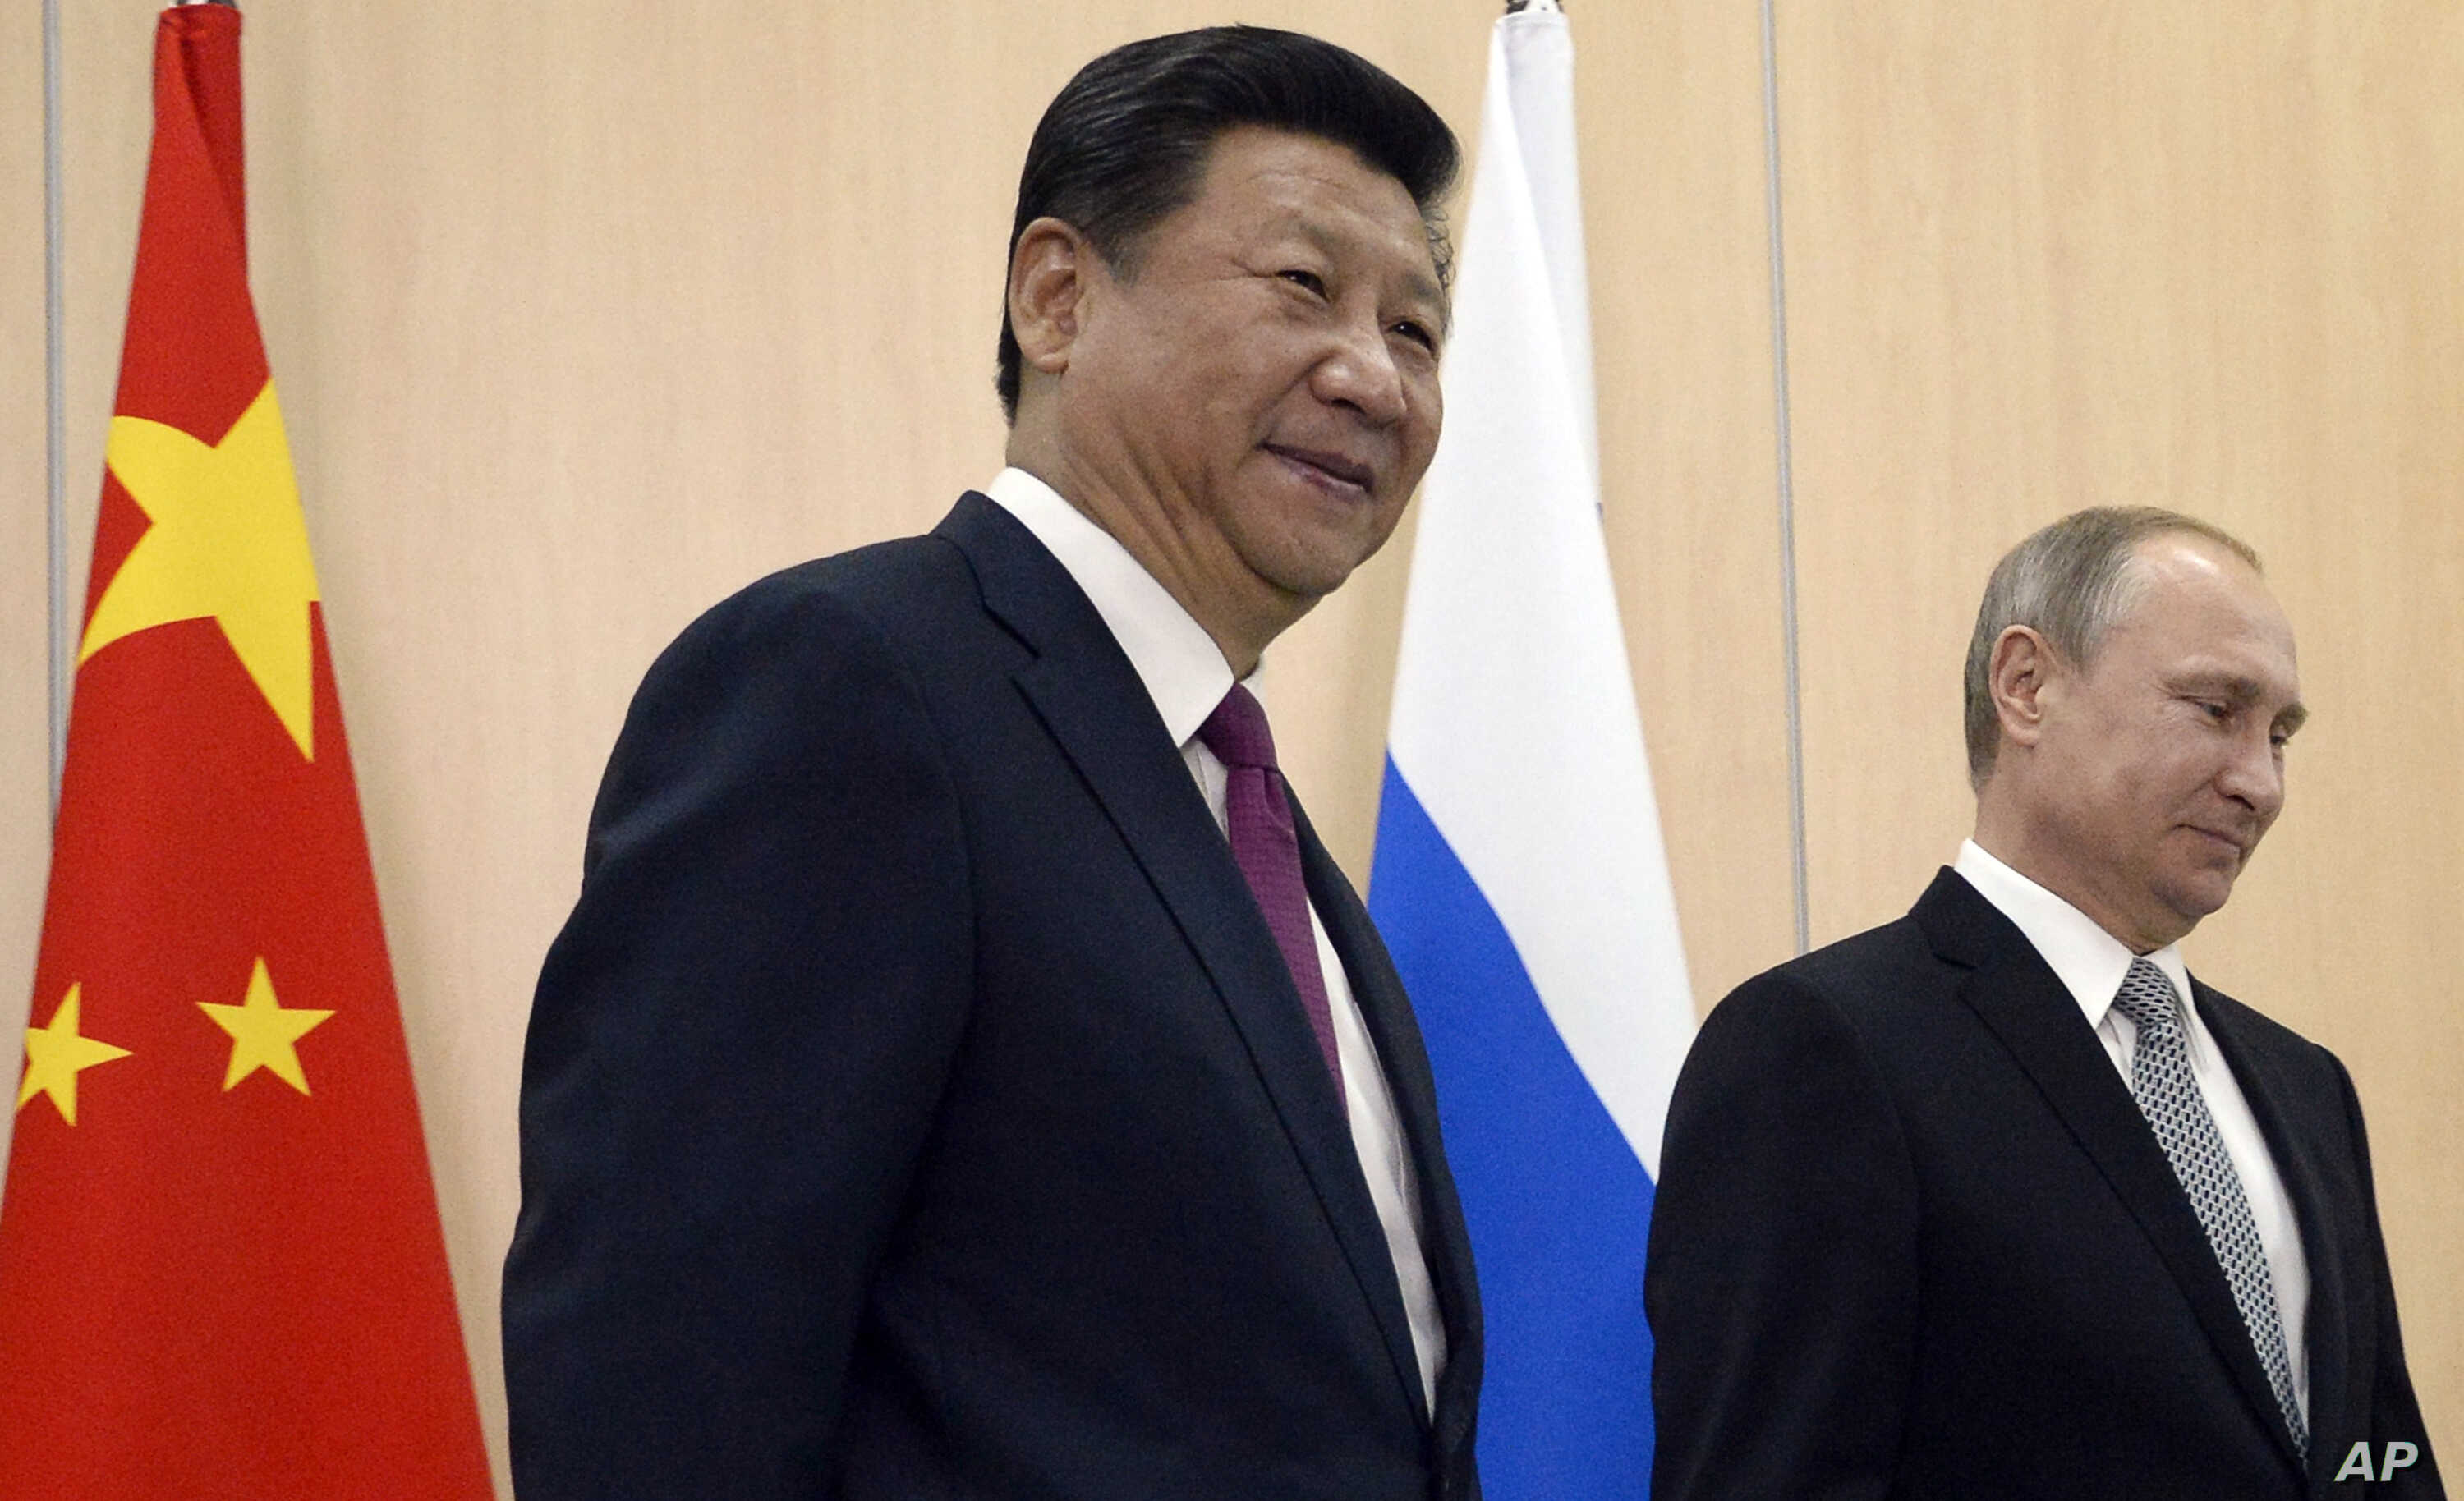 FILE - Chinese President Xi Jinping smiles before a meeting with Russian leader Vladimir Putin in Ufa, Russia.